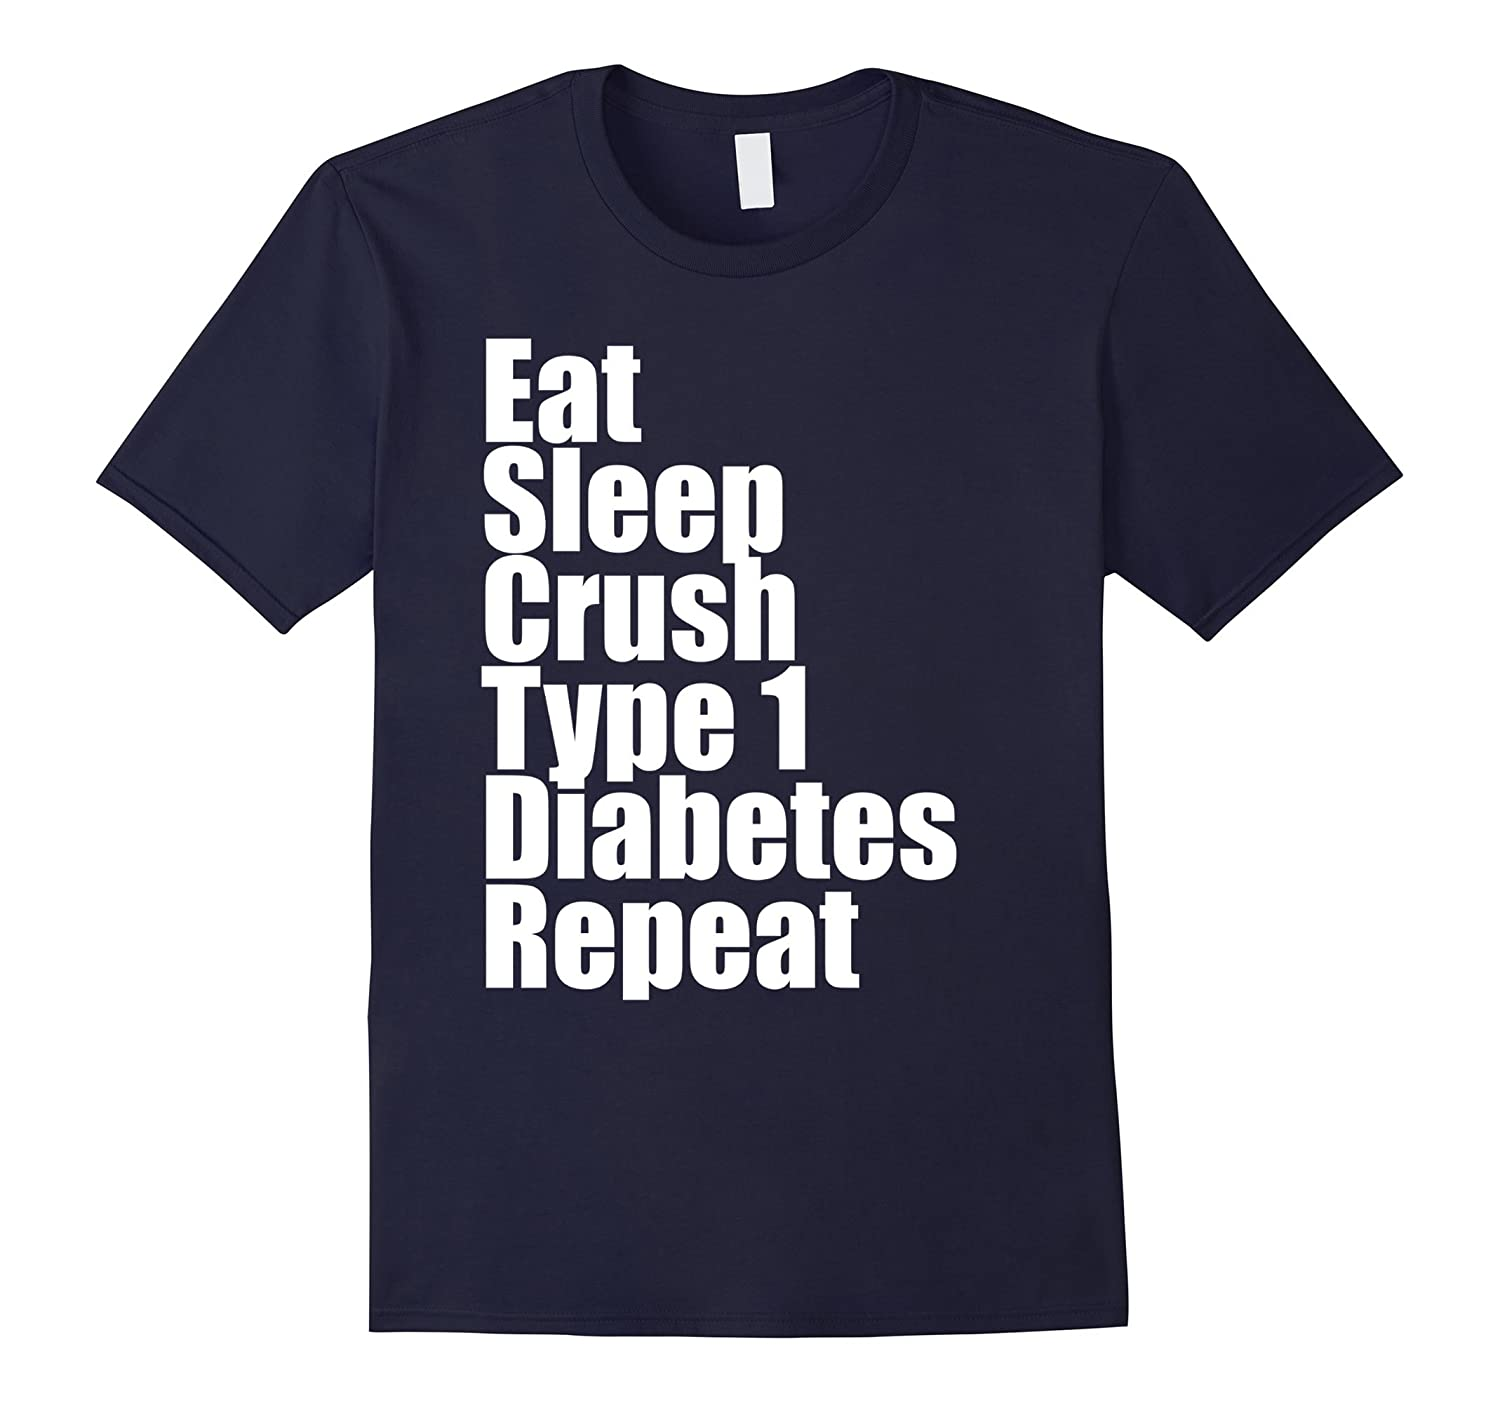 Eat Sleep Crush Type 1 Diabetes Repeat Trending T-Shirt-CD